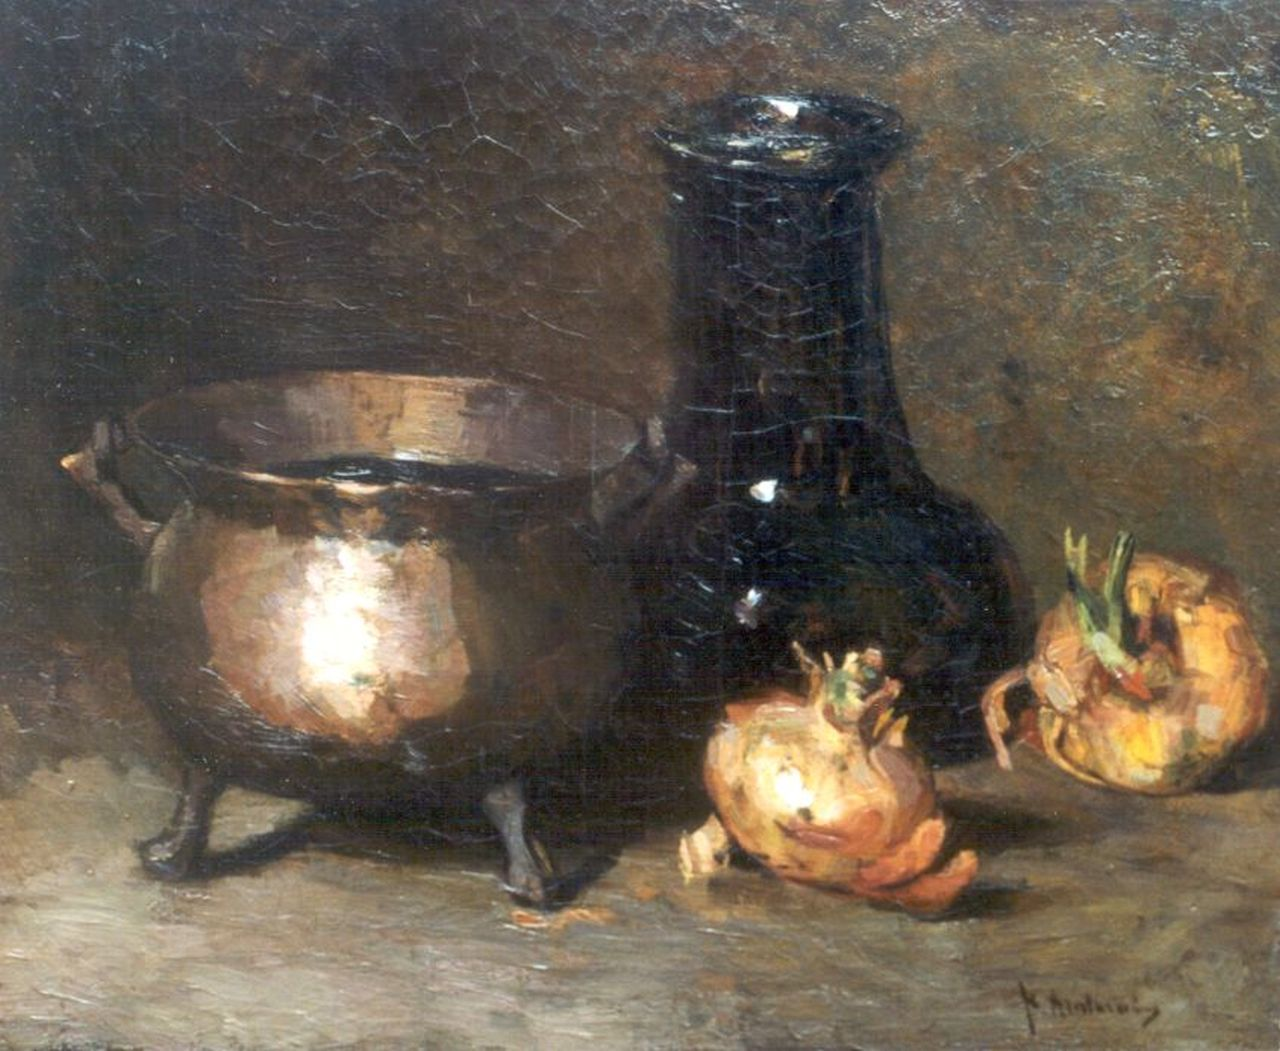 Arntzenius P.F.N.J.  | Pieter Florentius Nicolaas Jacobus 'Floris' Arntzenius, A still life with onions and a copper bowl, oil on canvas 38.5 x 46.3 cm, signed l.r.